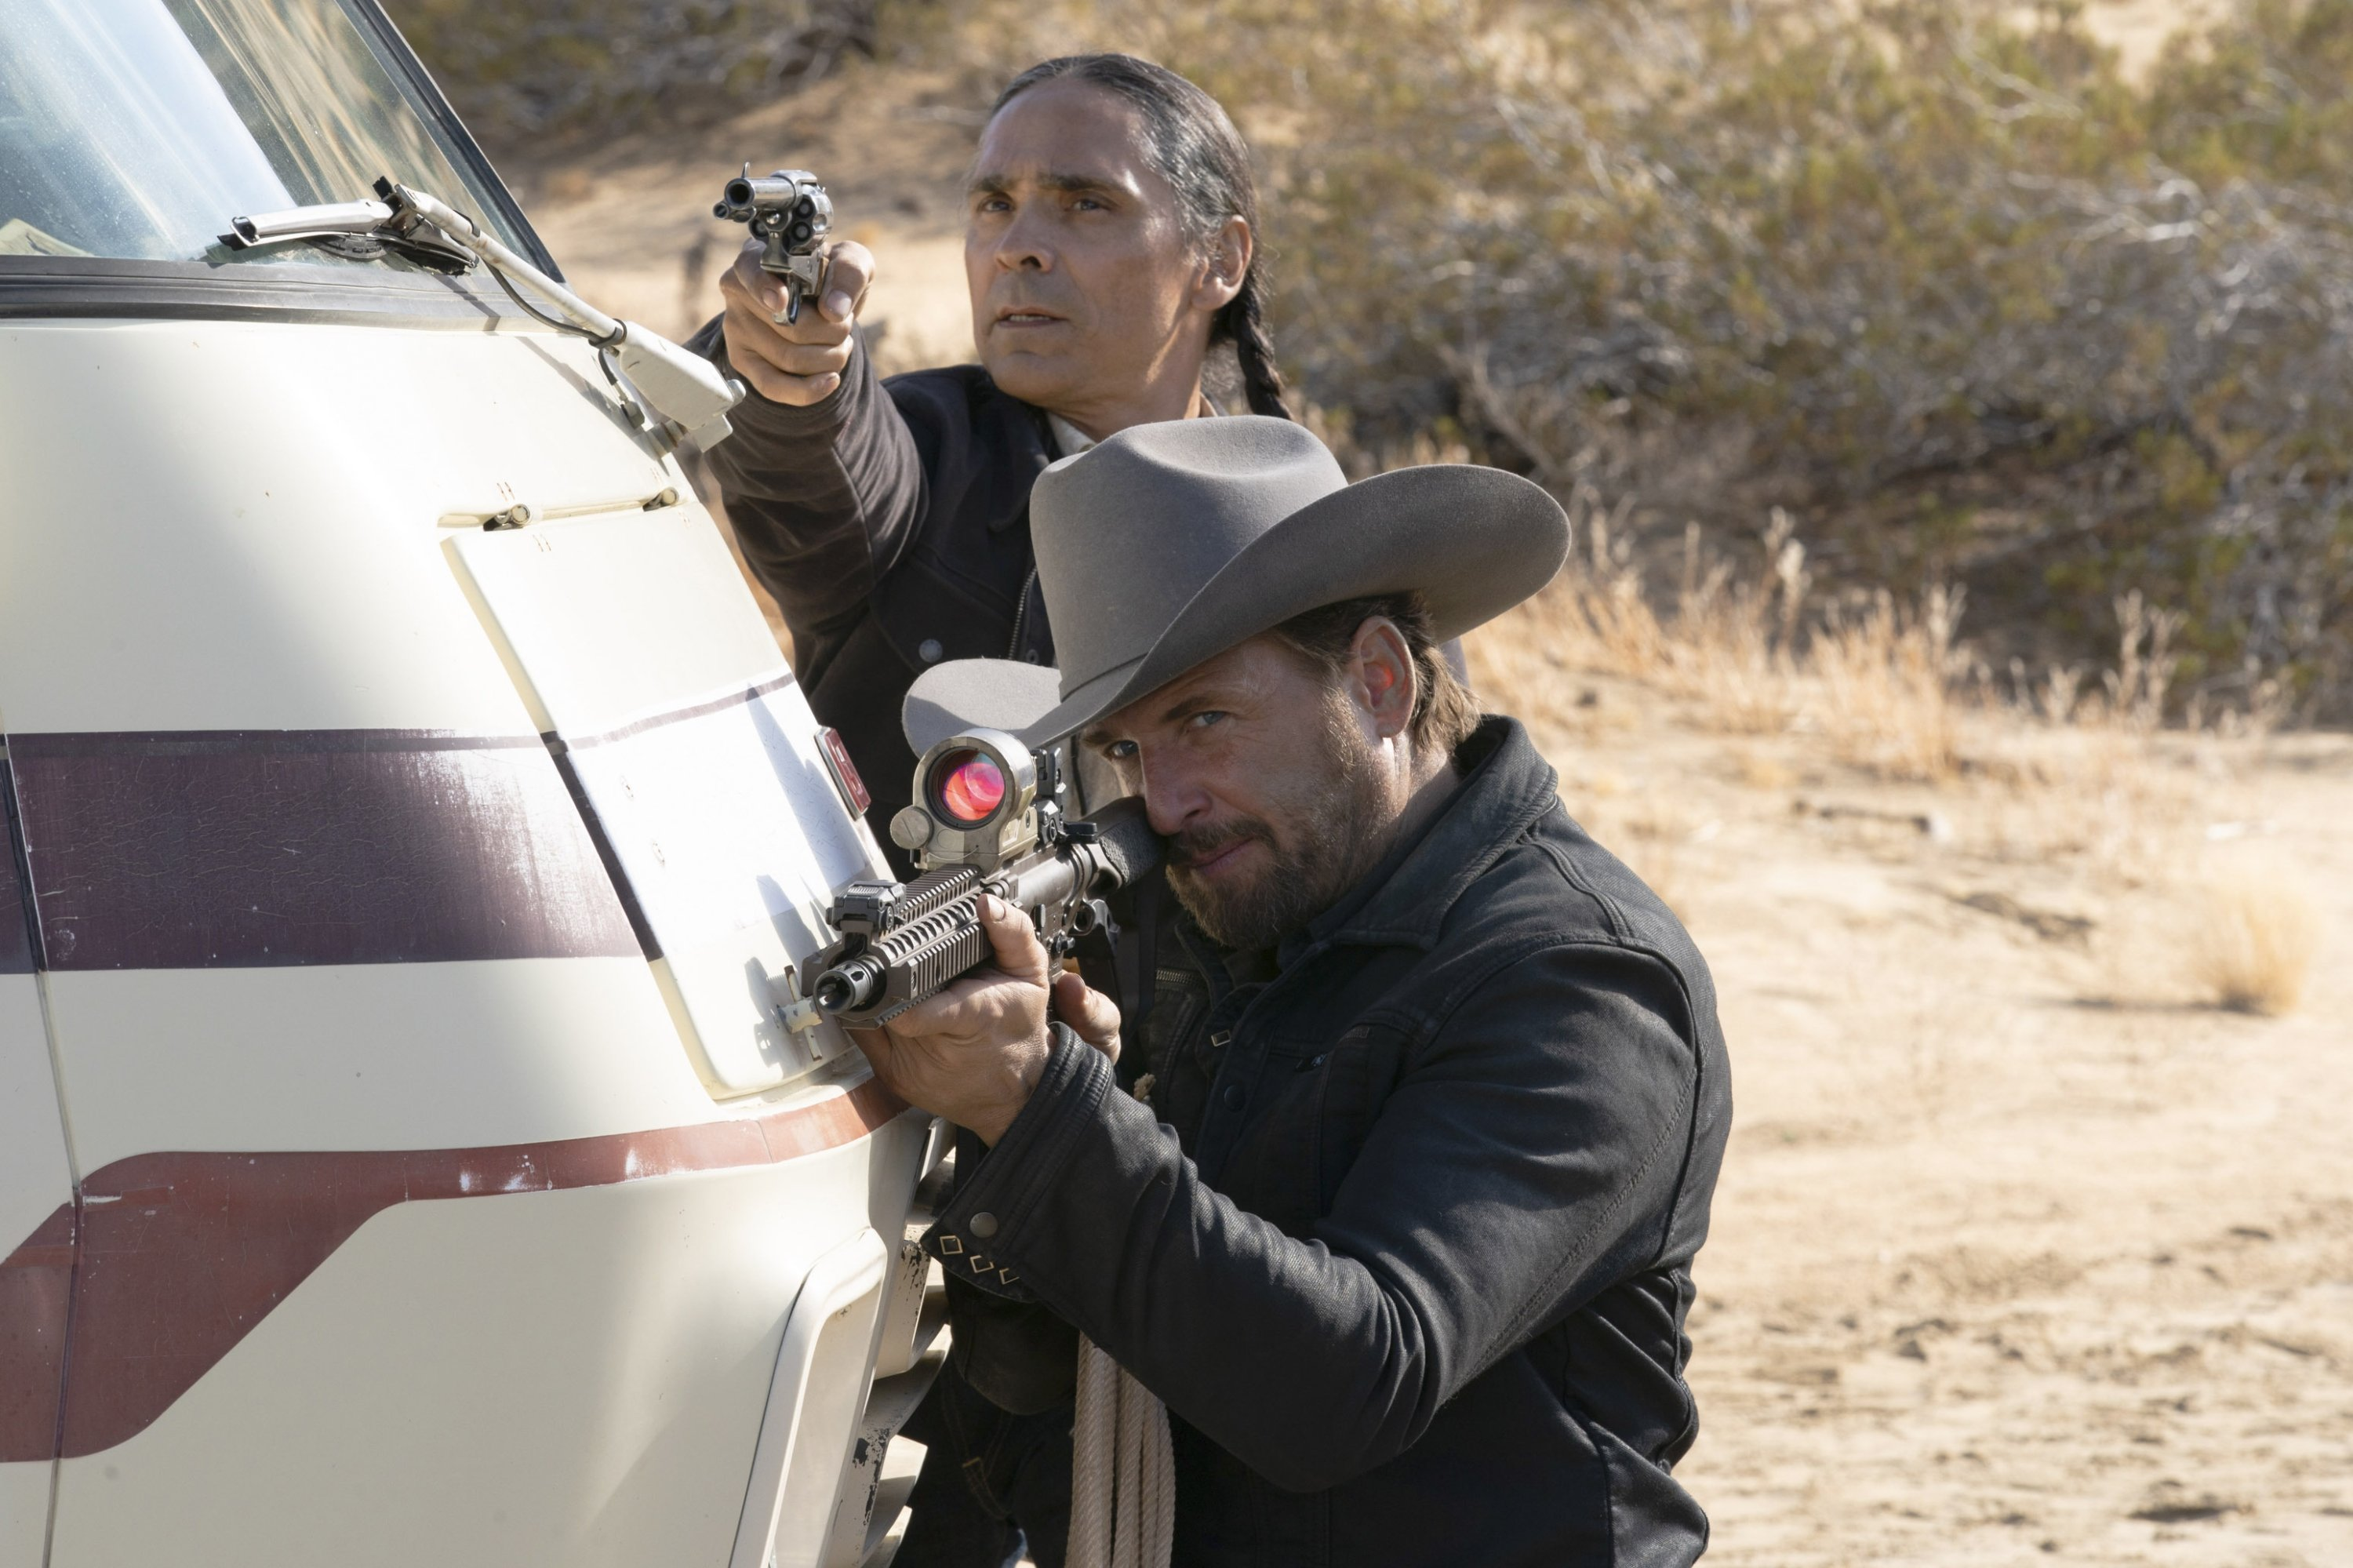 Josh Lucas (front) and Zahn McClarnon aim their weapons in a scene from 'The Forever Purge,' directed by Everardo Valerio Gout. (Universal Pictures via AP)